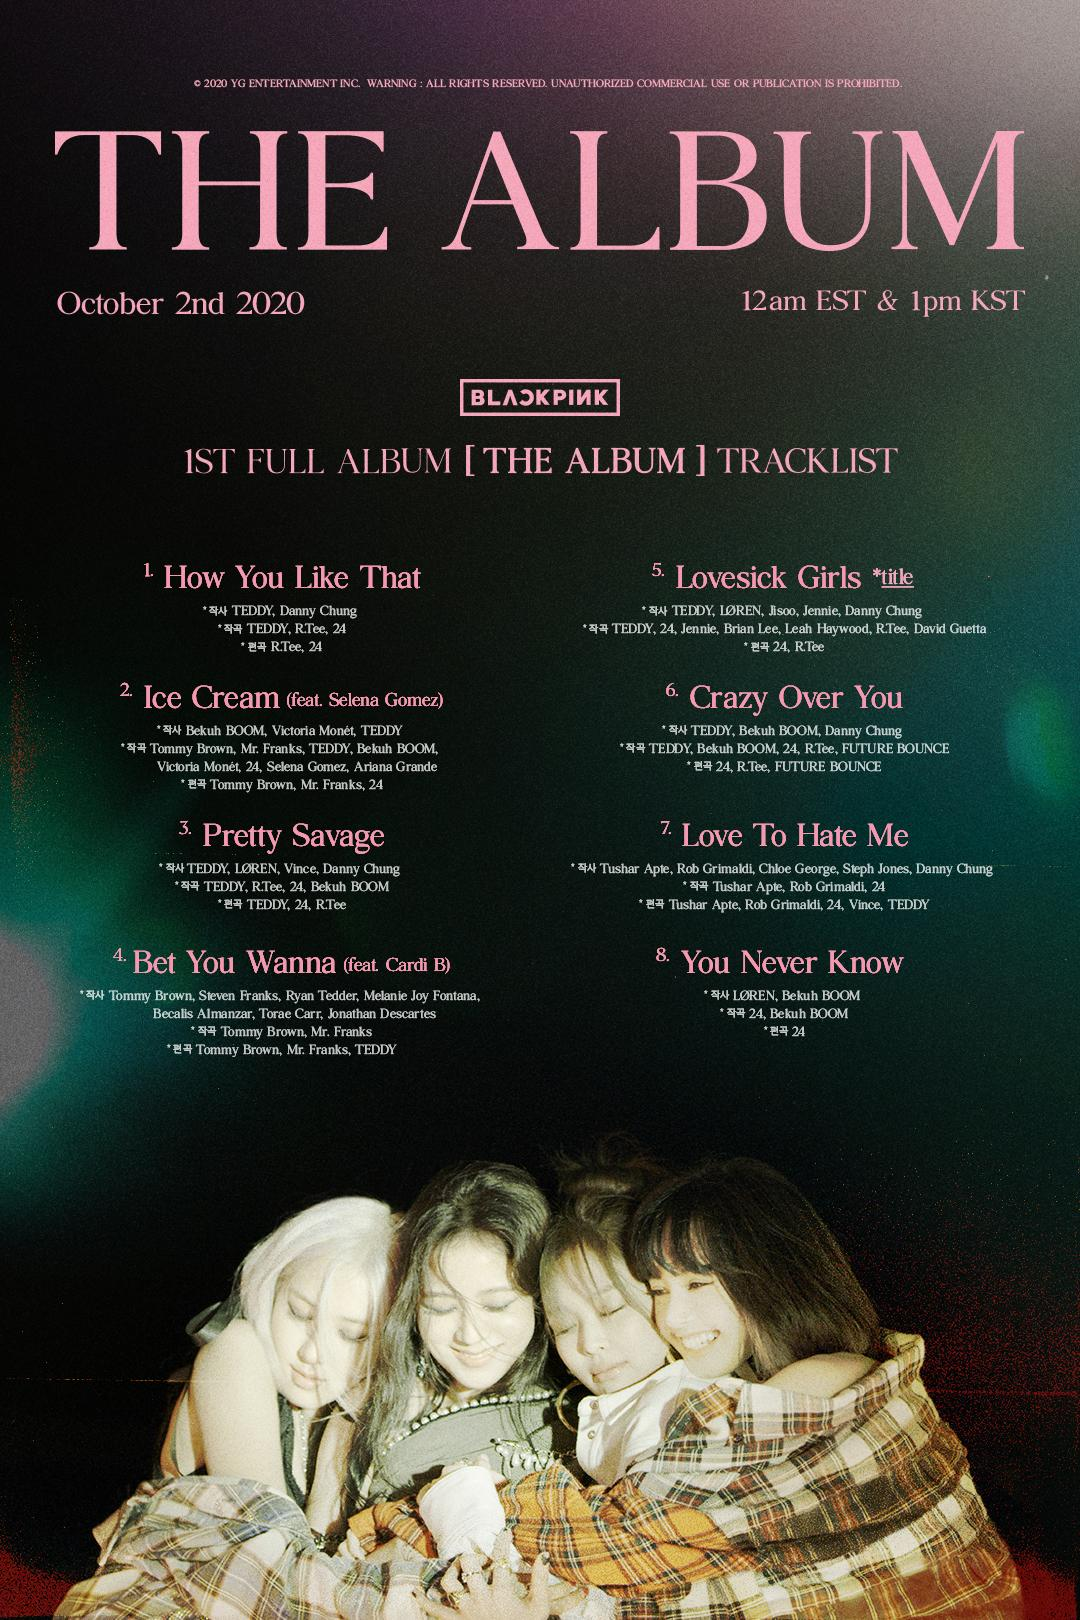 BLACKPINK - 'THE ALBUM' TRACKLIST POSTER